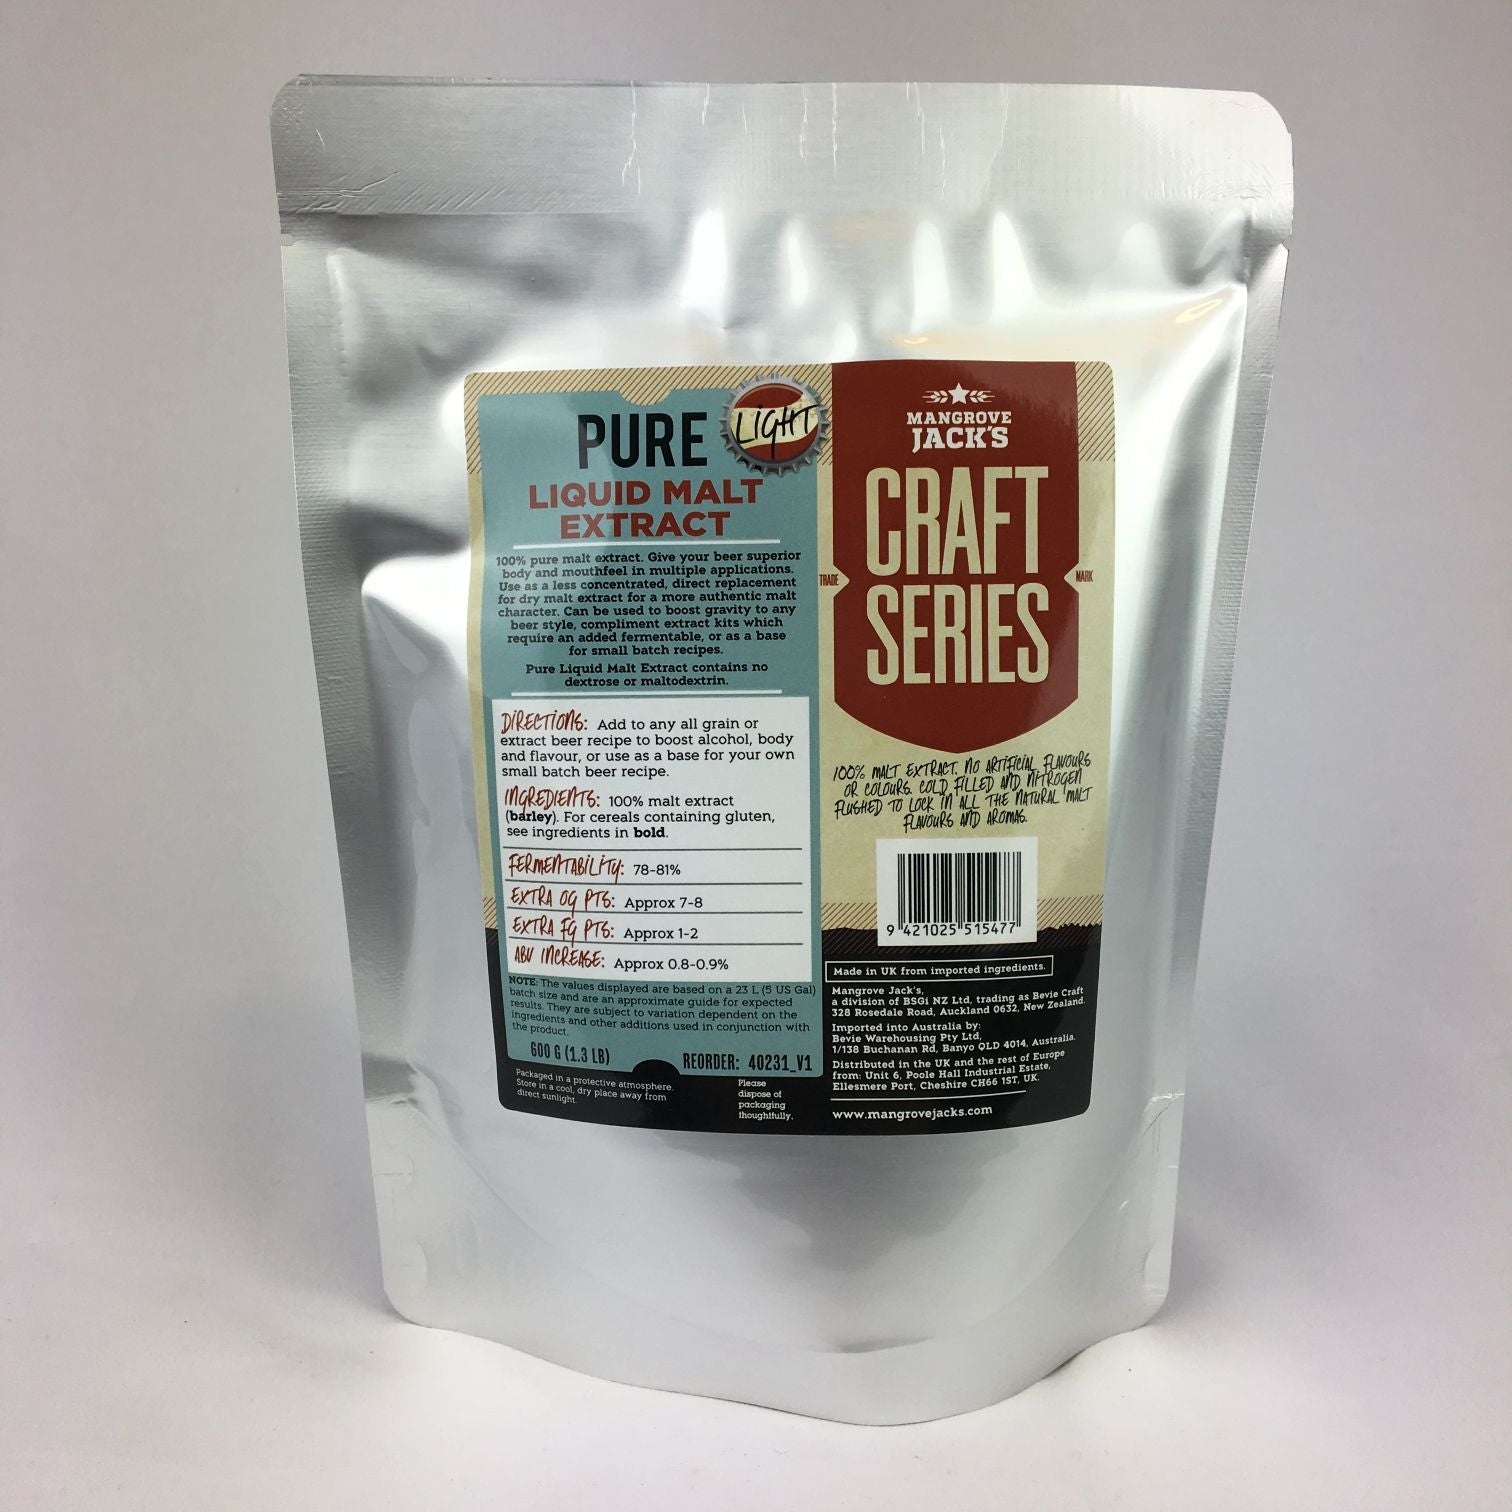 Mangrove Jacks Pure Liquid Malt Extract 600G